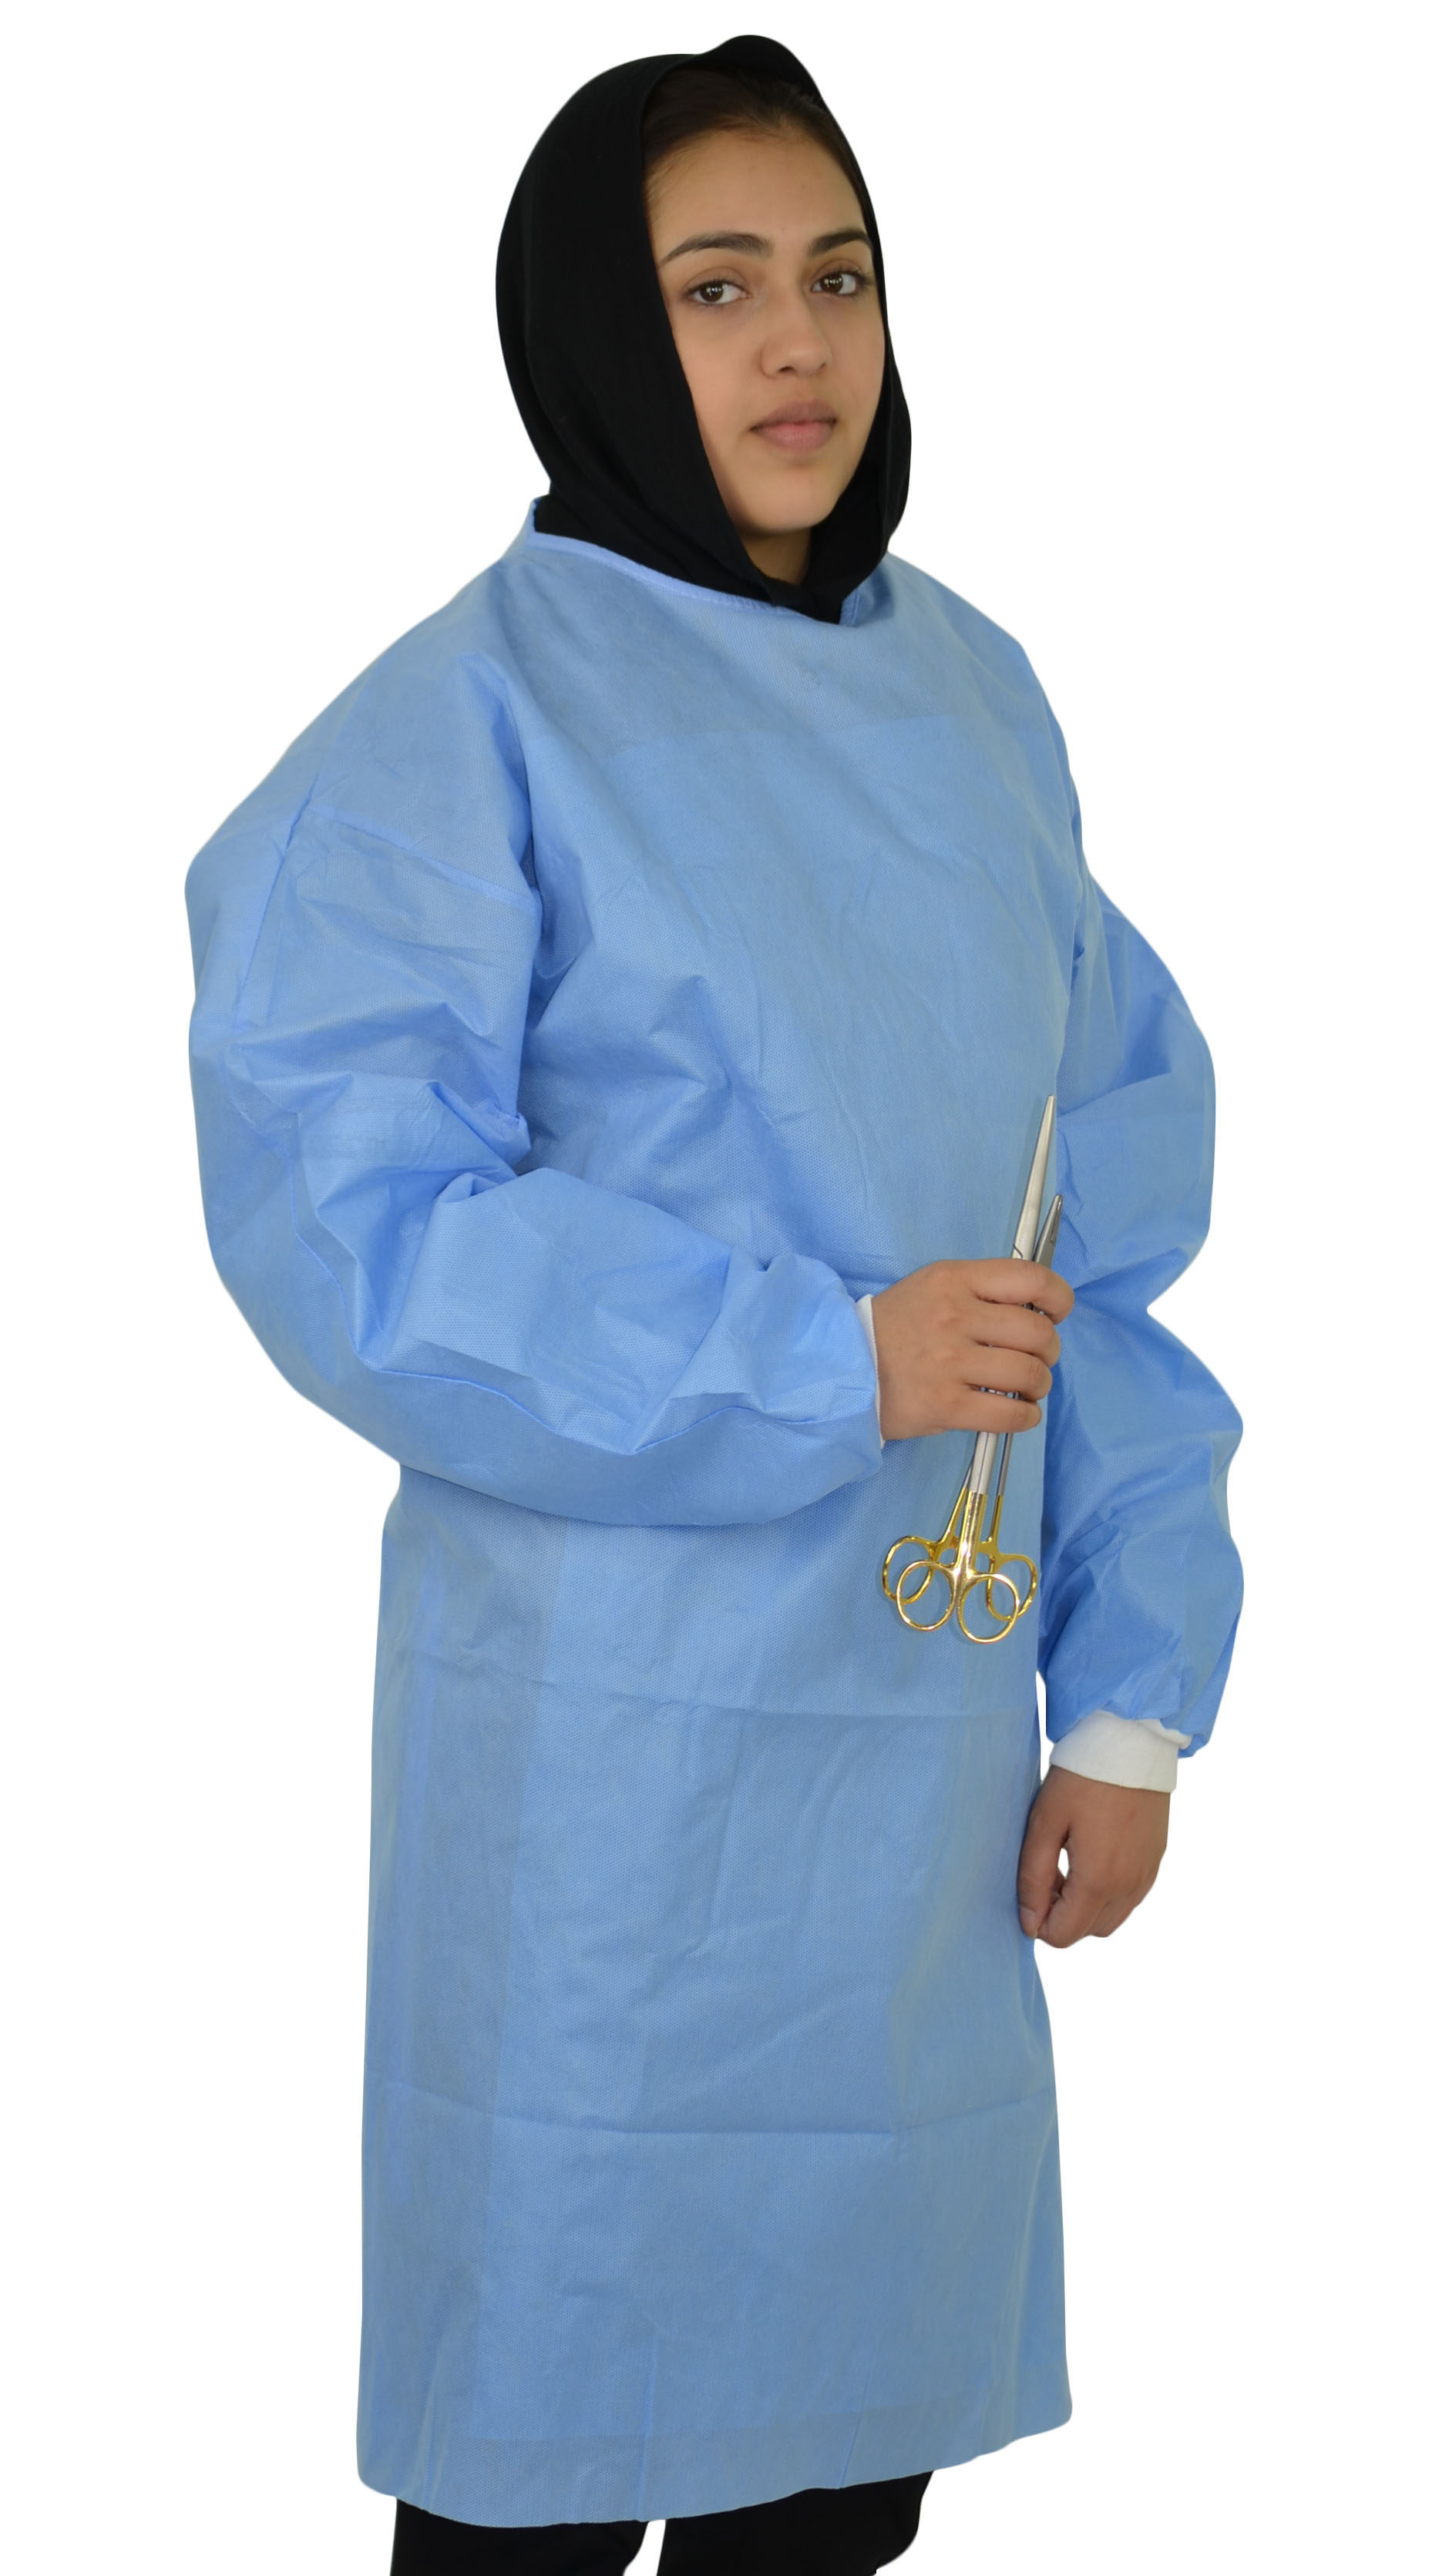 Isolation Gown with Knit Cuffs - SMS